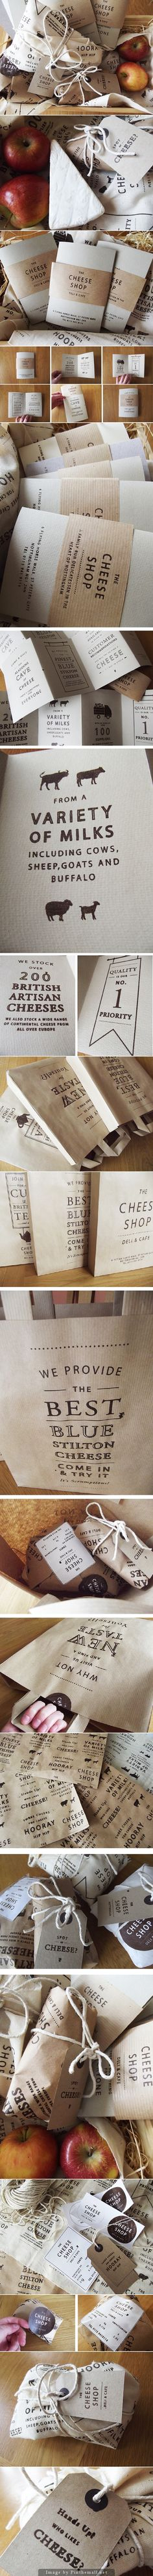 The Cheese Shop branded collateral by Charlotte Estelle Littlehale